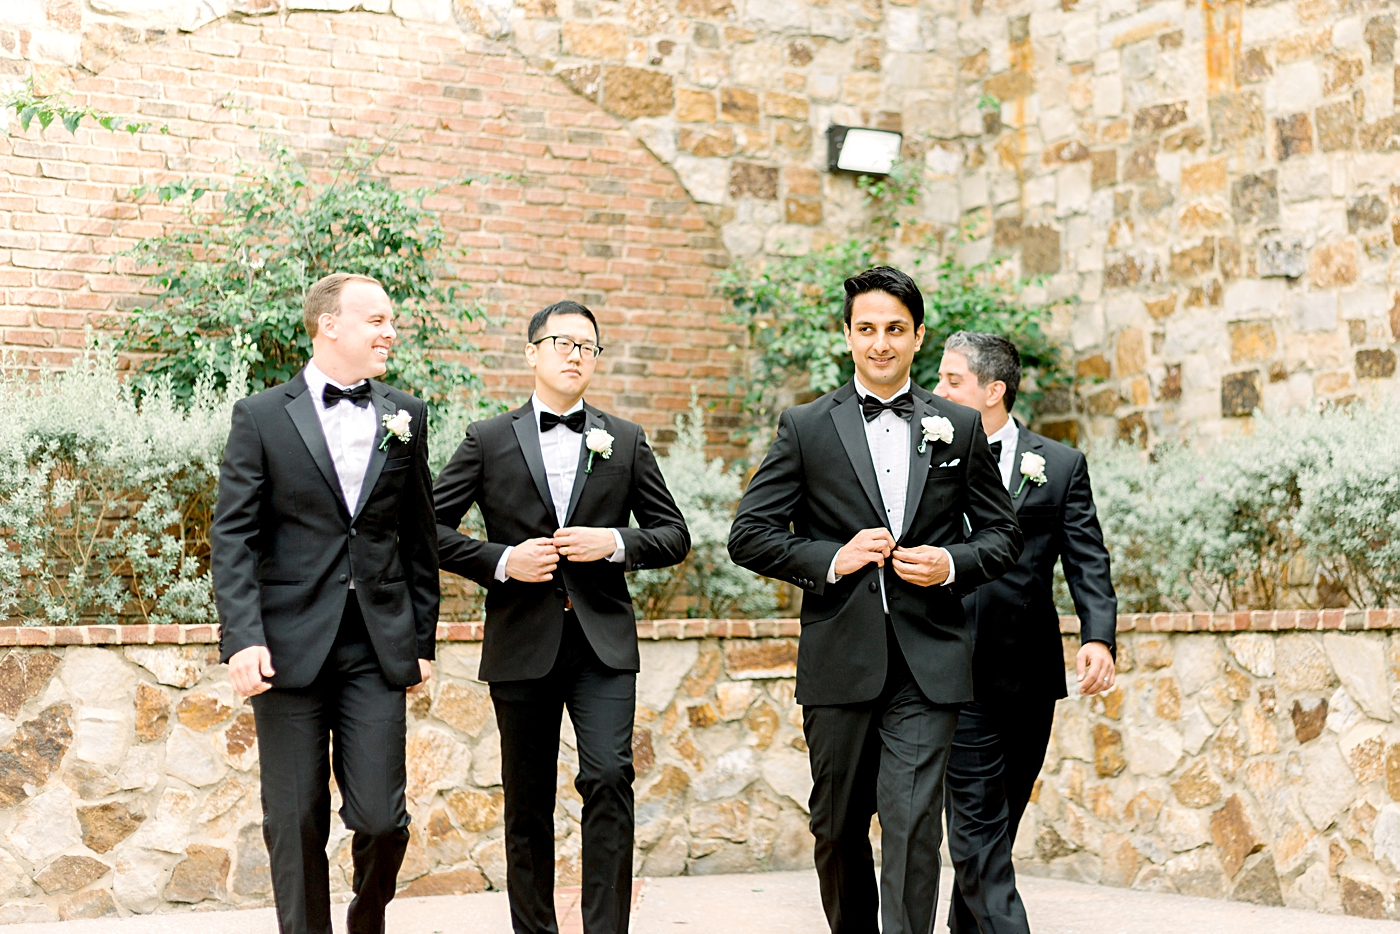 grooms men wedding photos